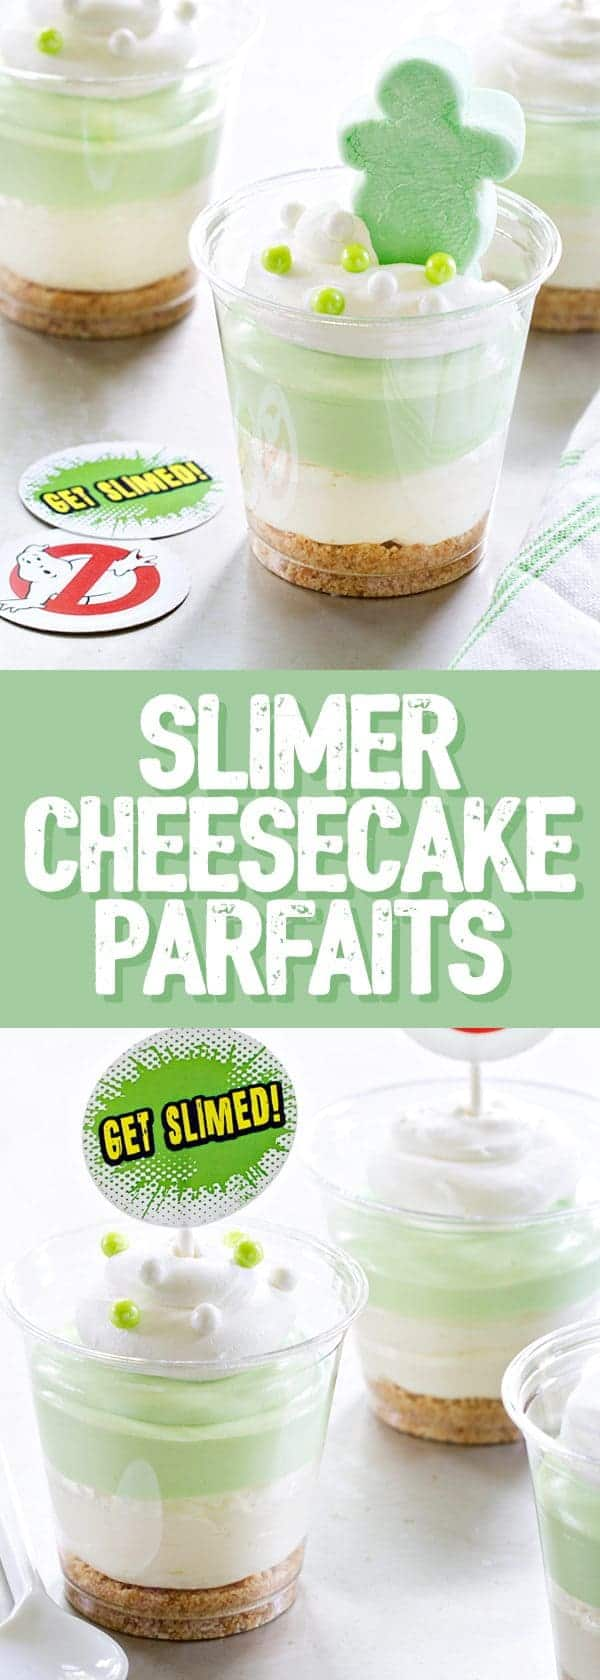 Slimer Cheesecake Parfaits are layered with vanilla cookies, marshmallow cheesecake filling and pistachio pudding. They're sure to be a hit for the Ghostbusters™ lover in your life!